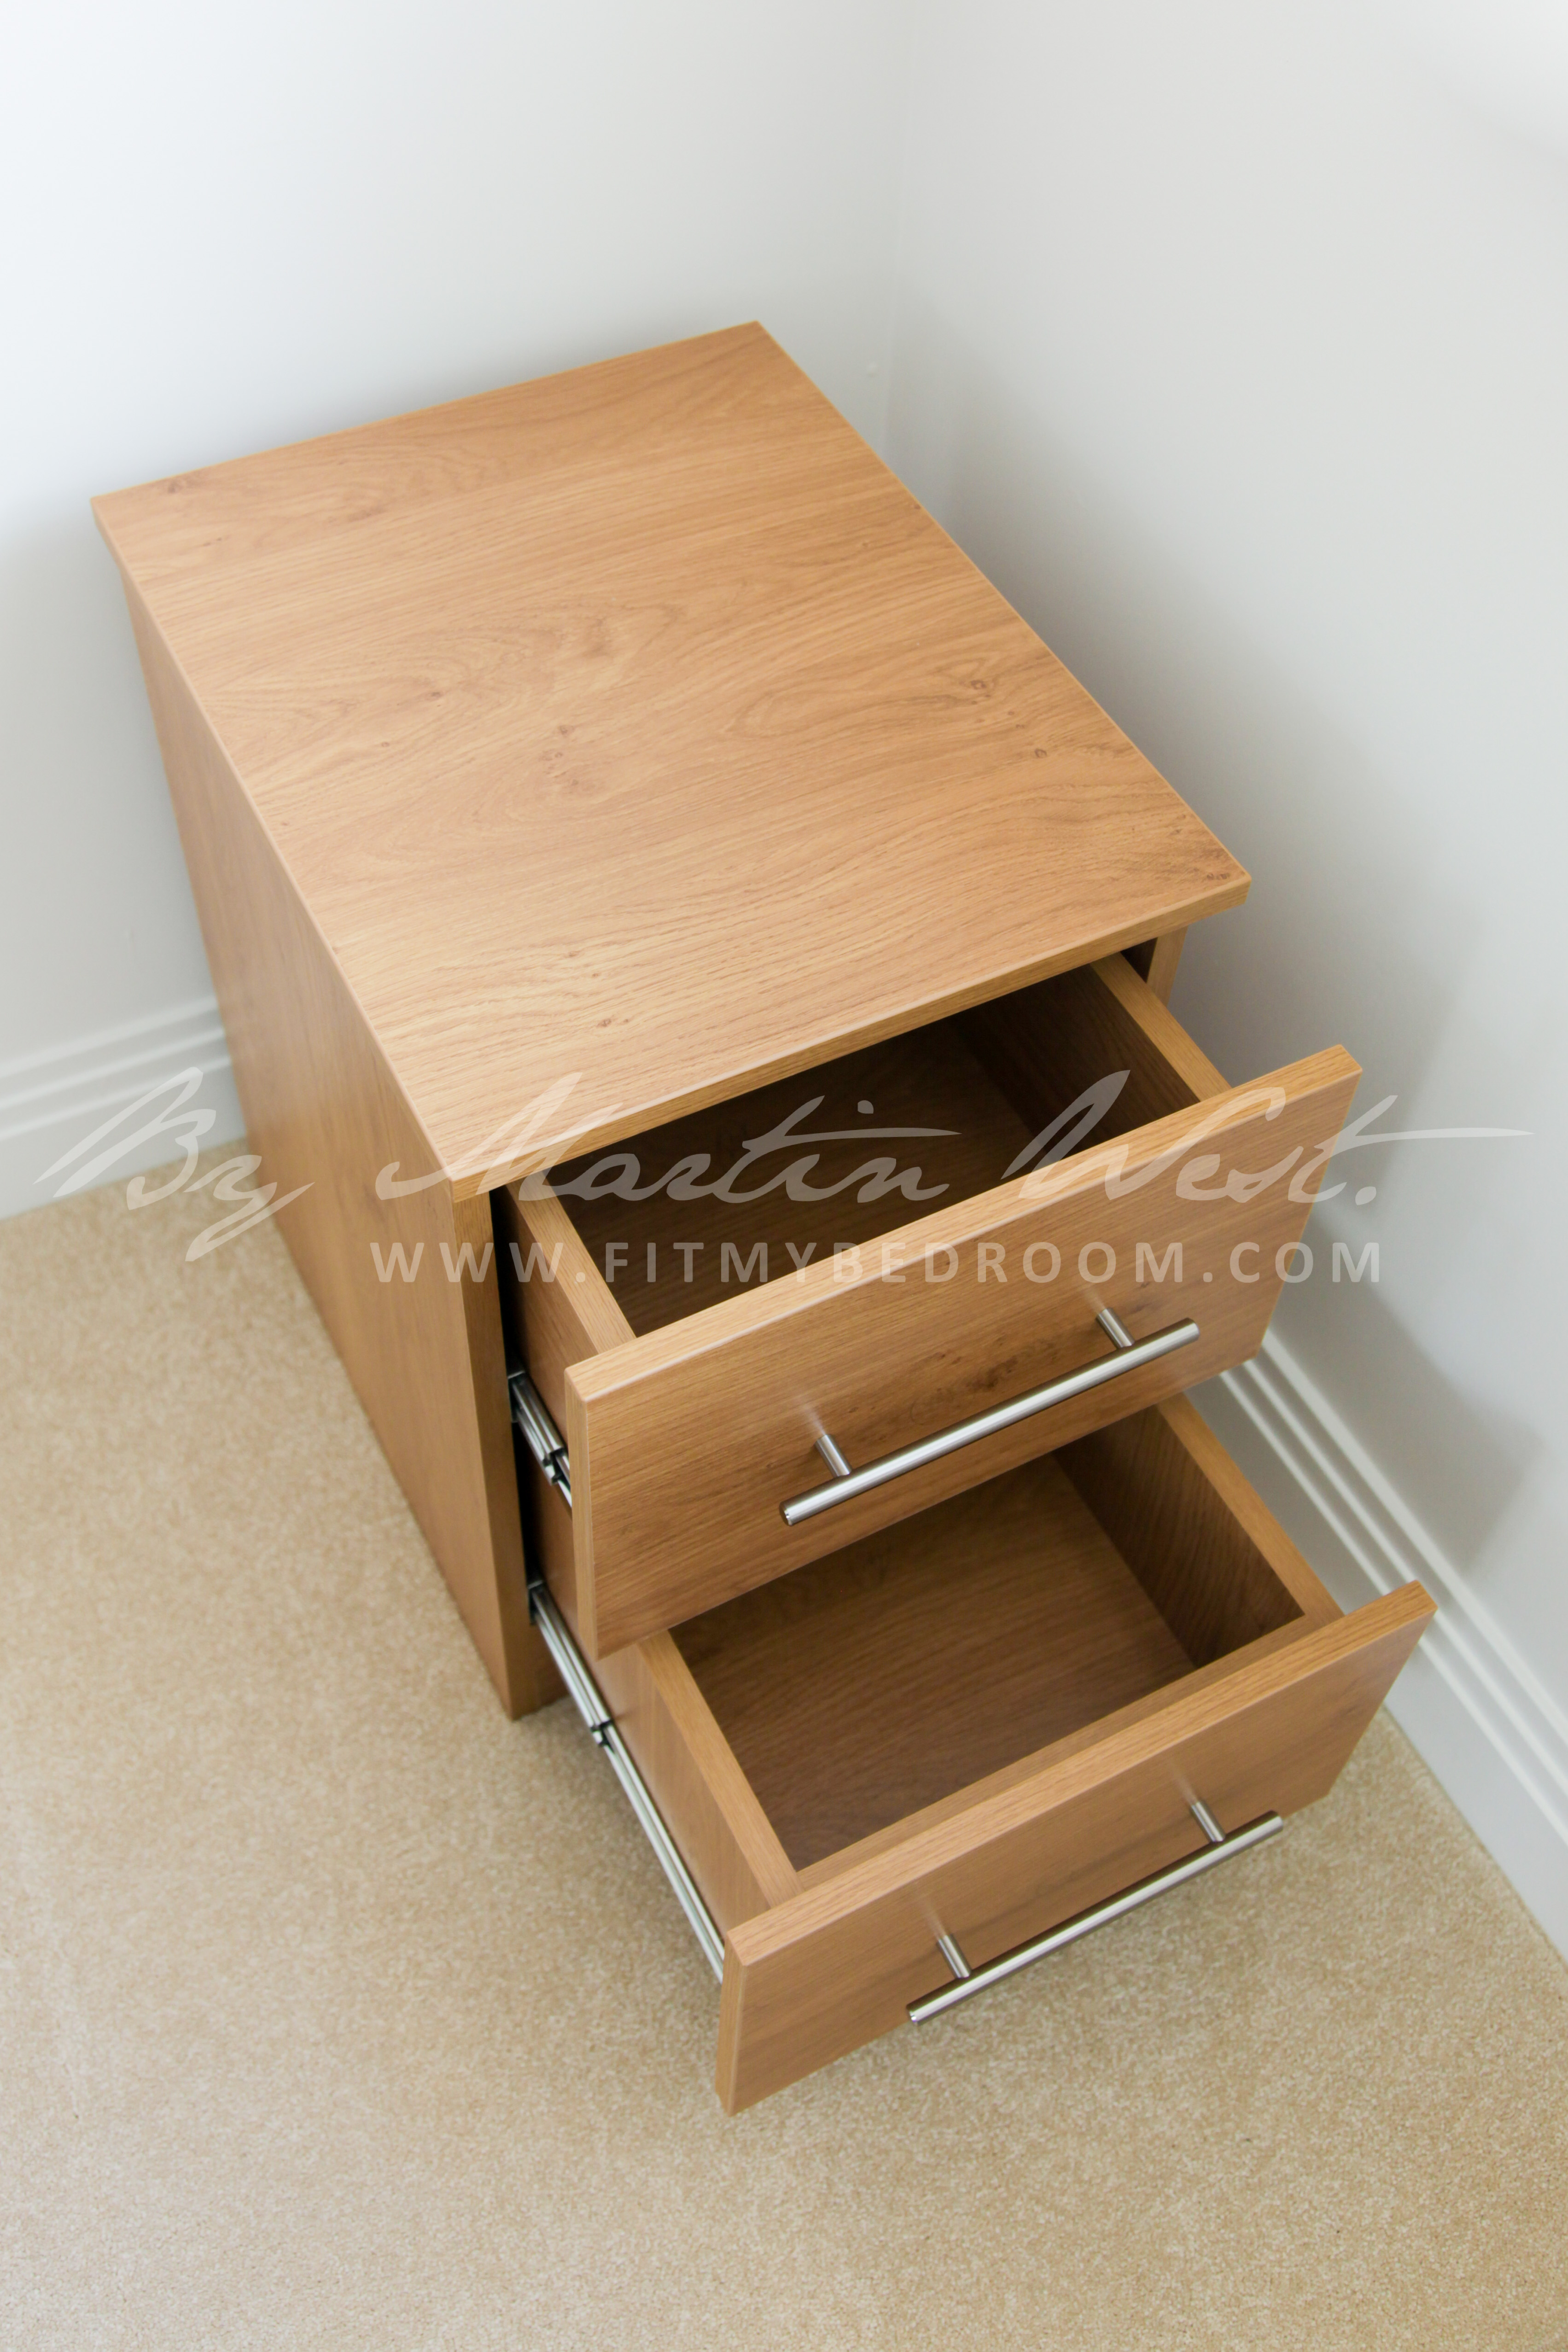 Custom Made Bedroom Furniture Including Cabinets And Drawers